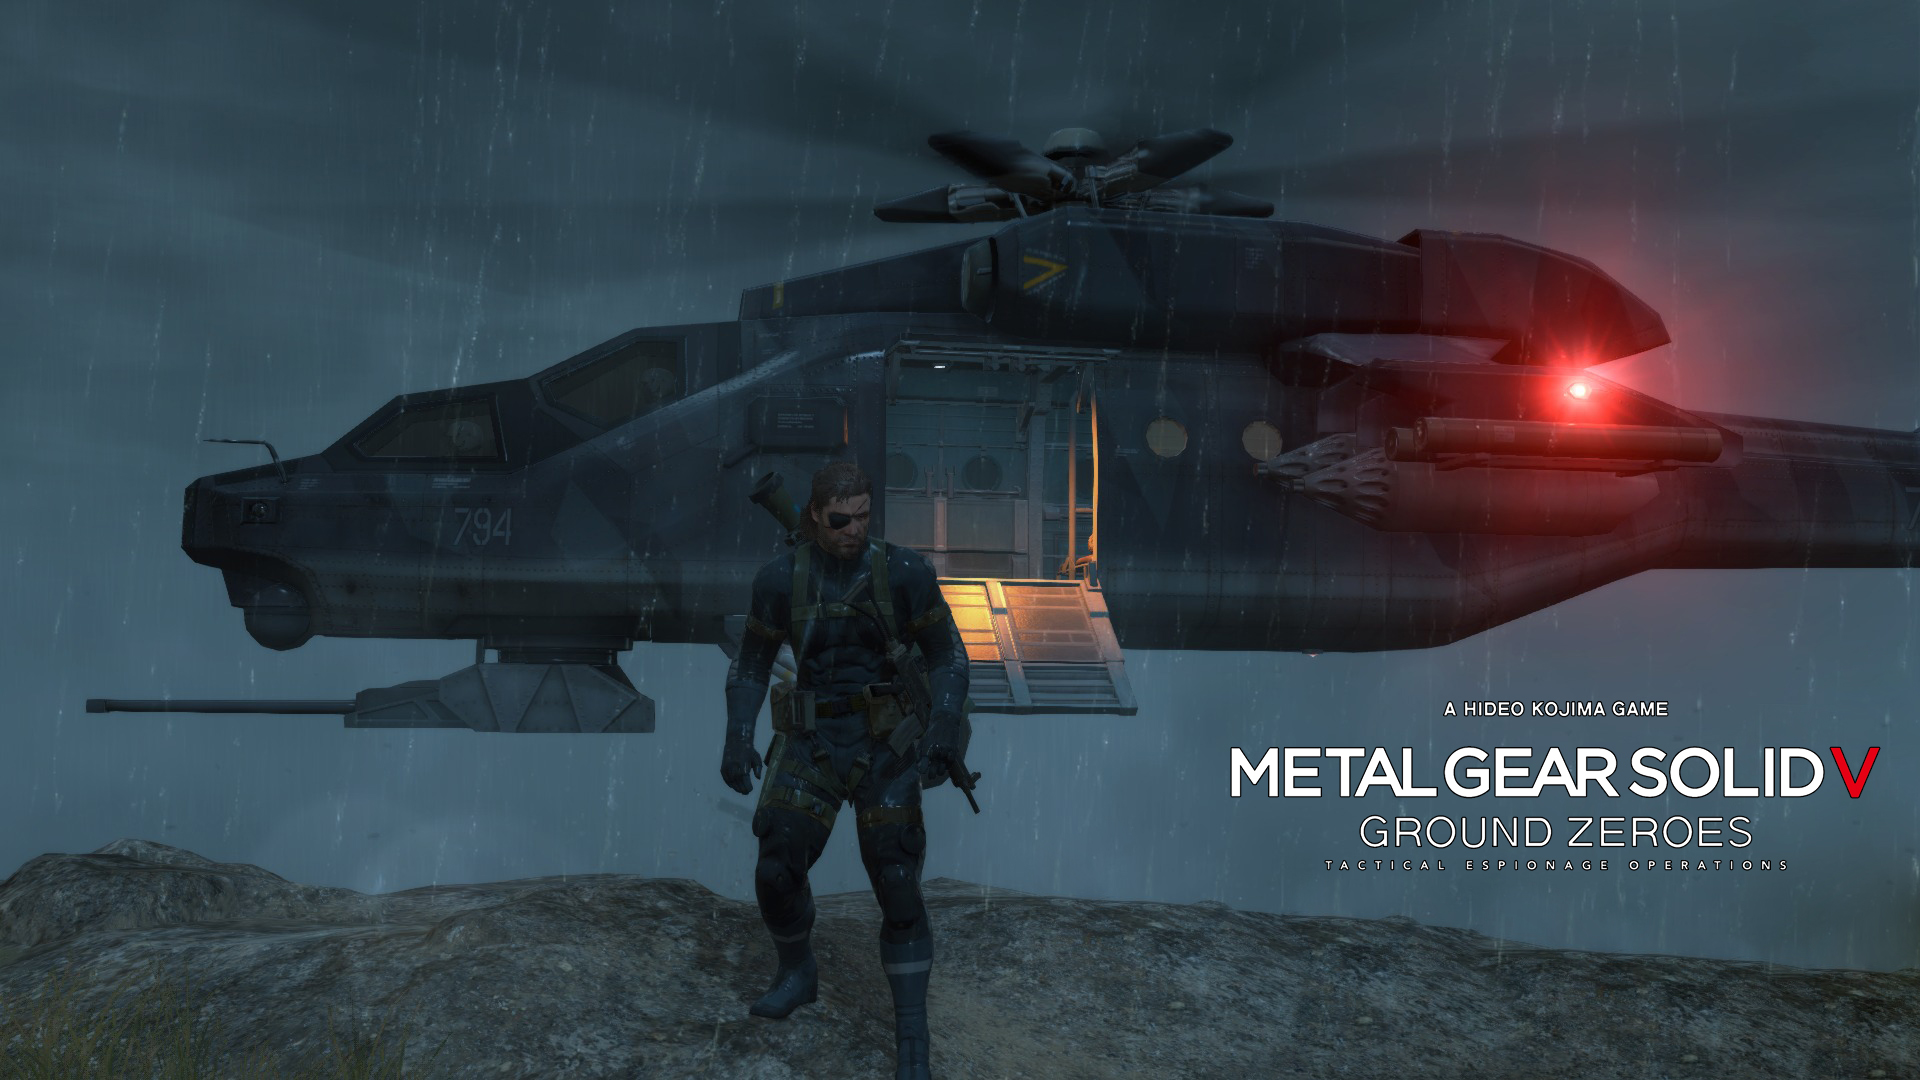 Metal Gear Solid V - Ground Zeroe